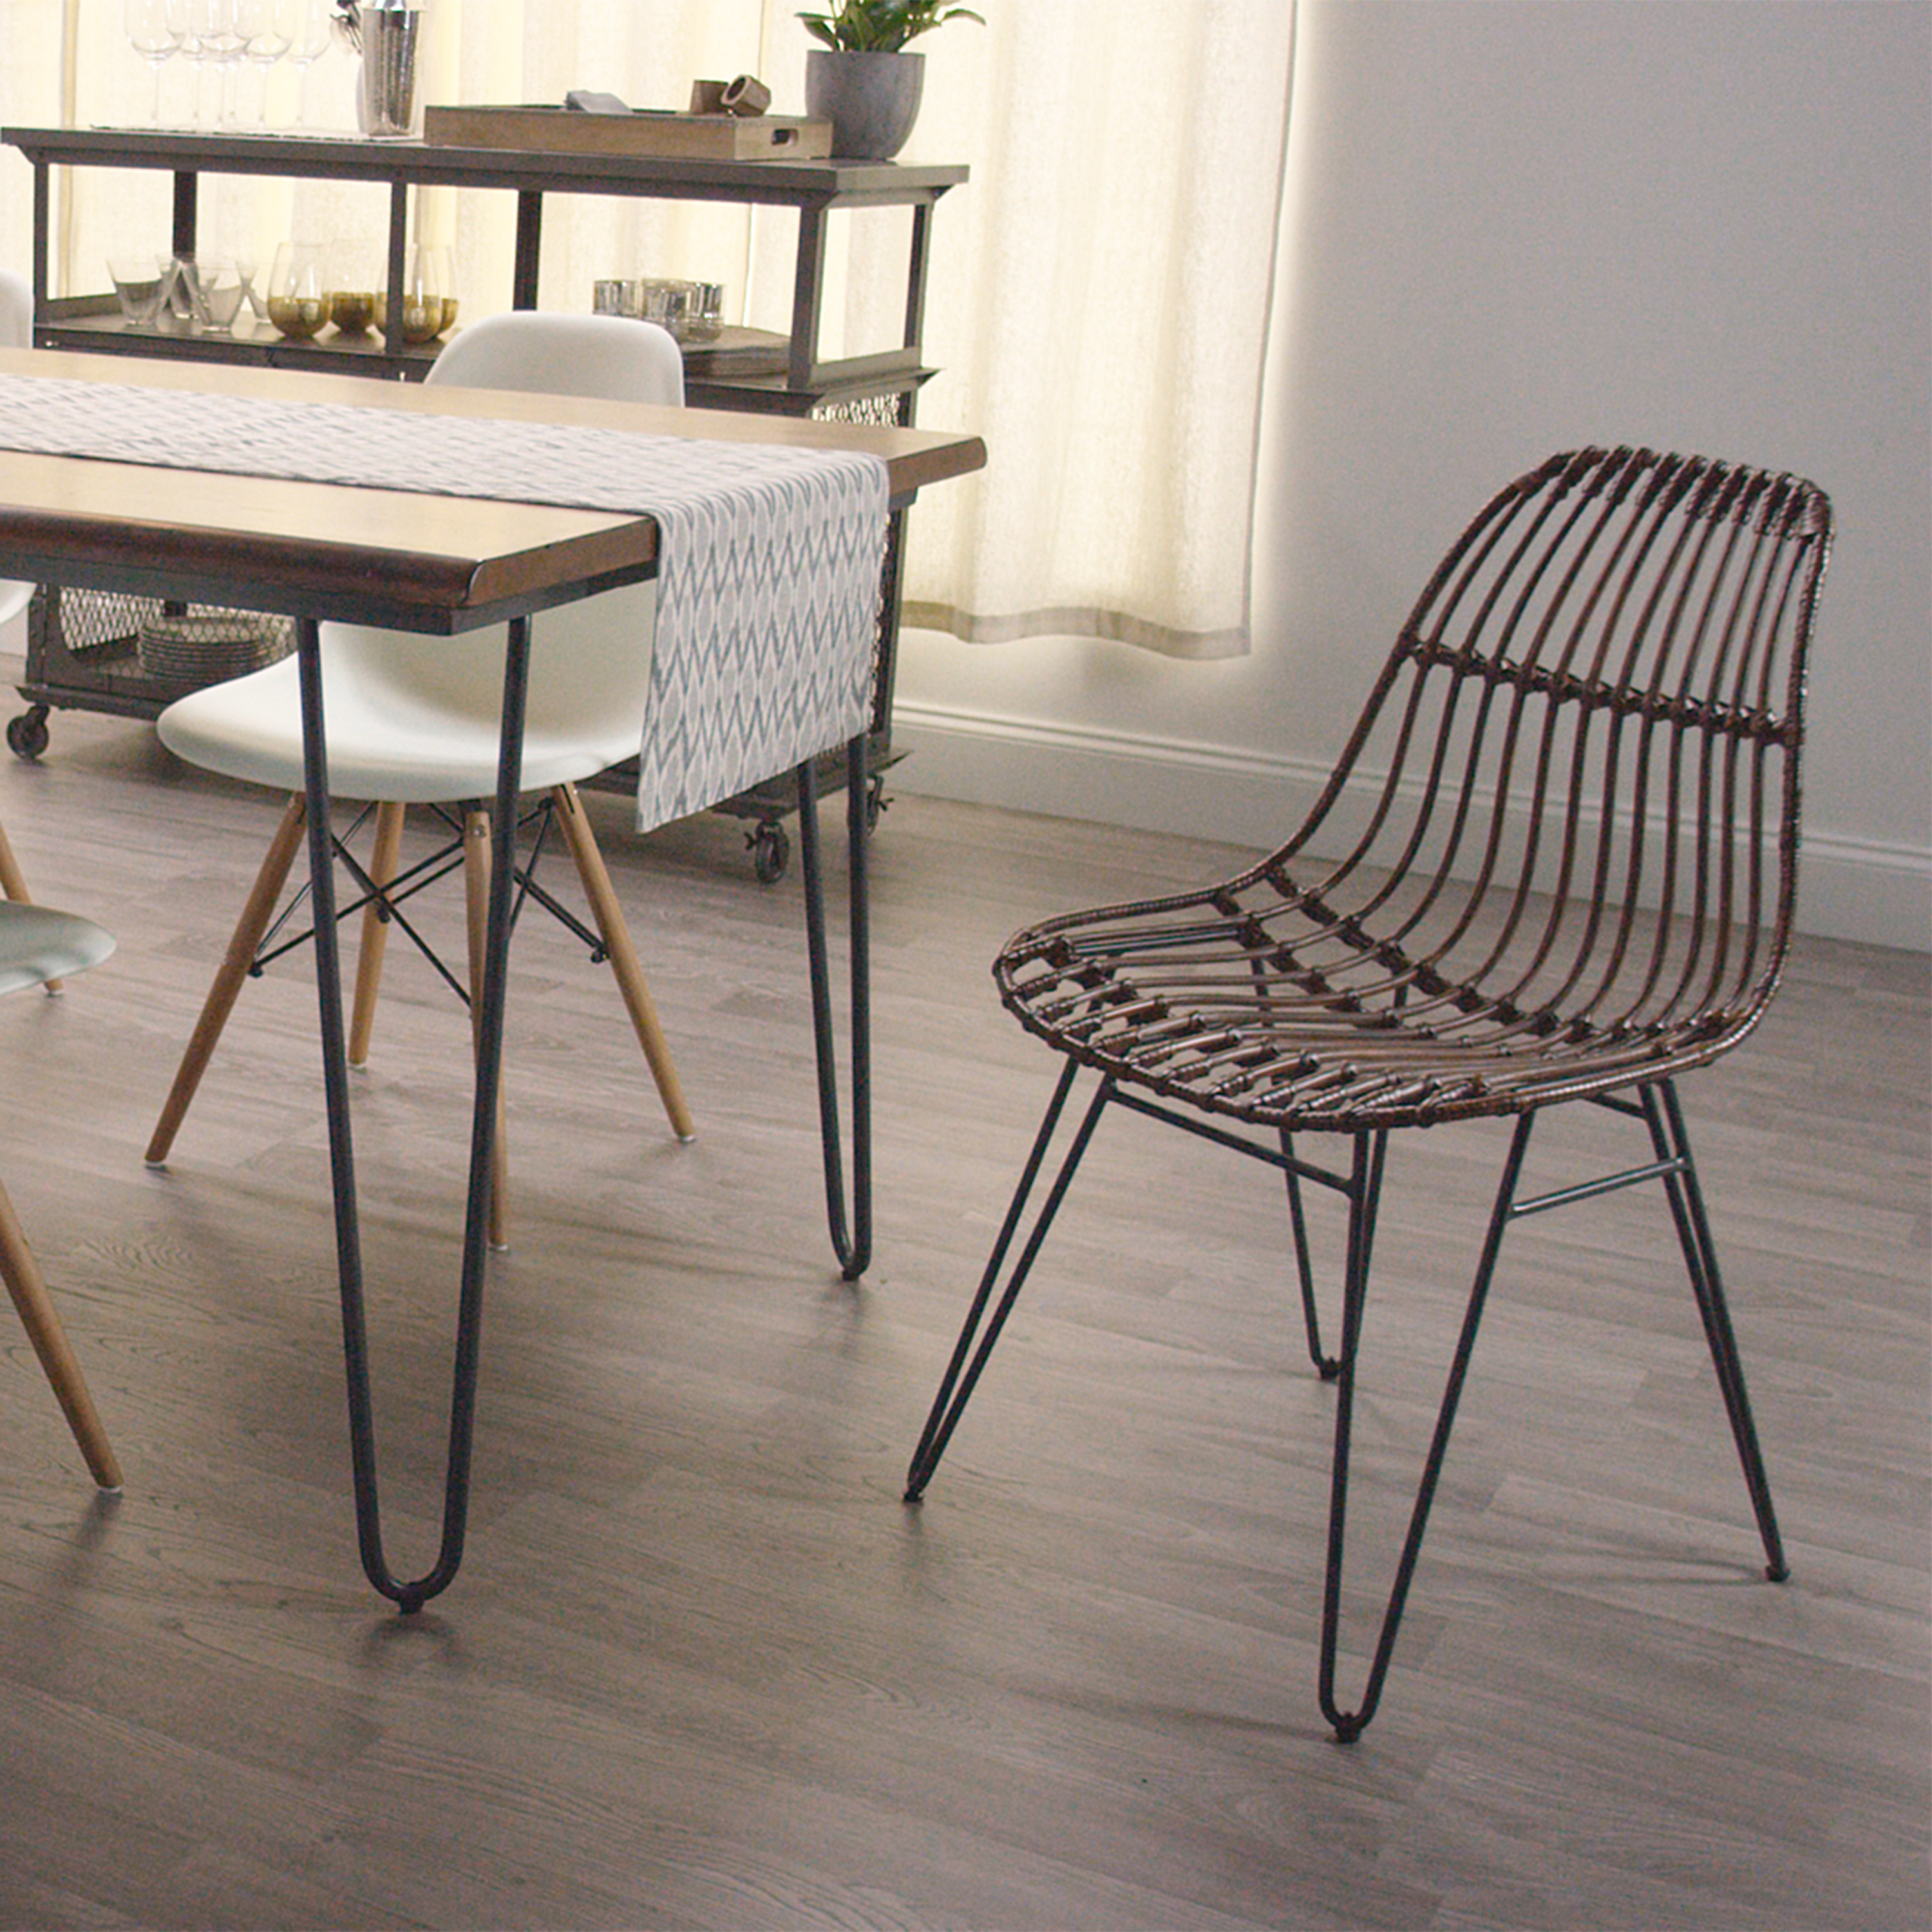 Hairpin Leg Chair Rattan Flynn Hairpin Dining Chairs With Rustic Legs Set Of